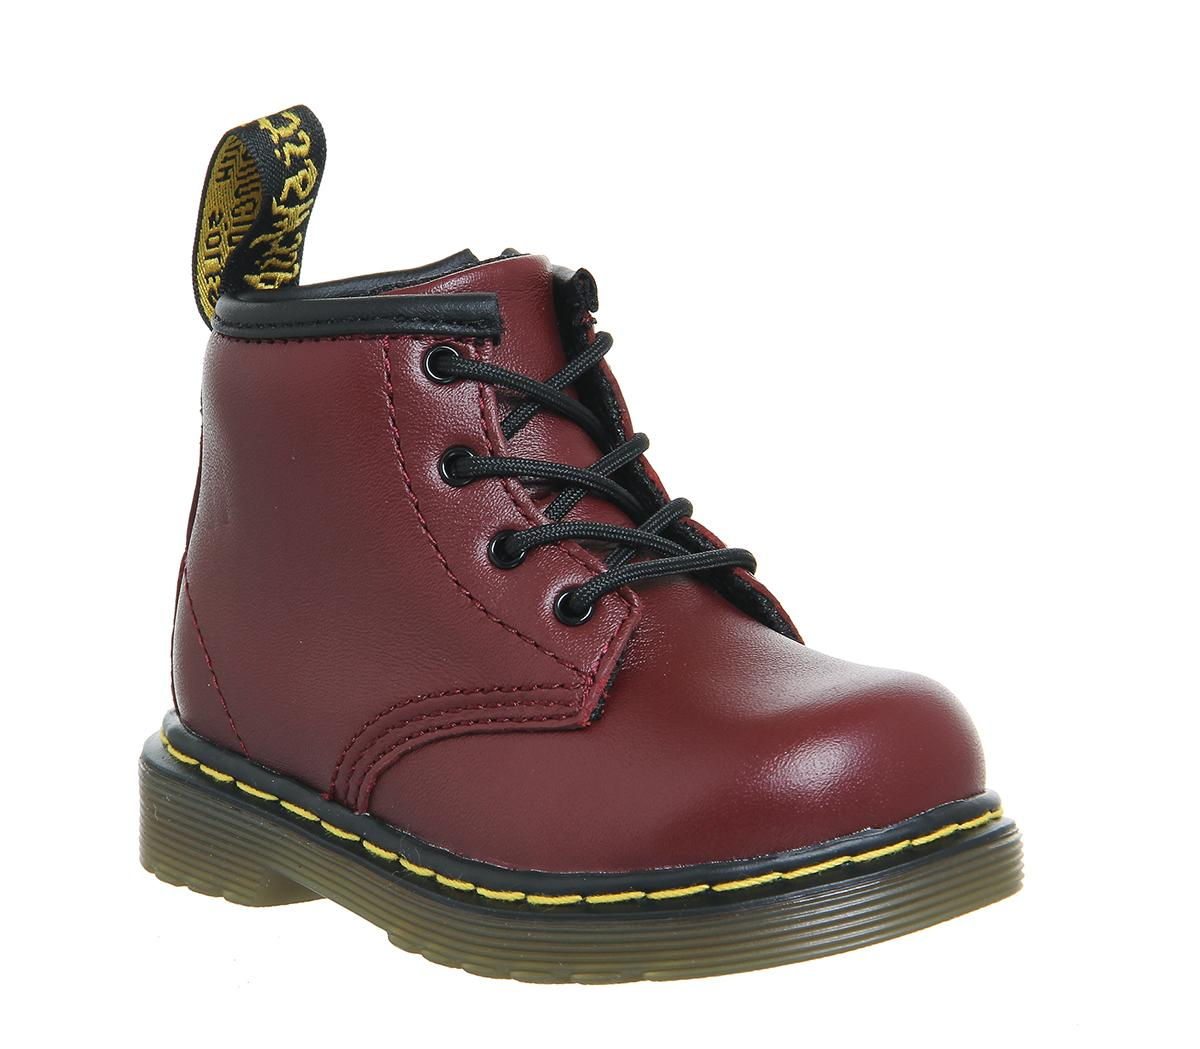 Kids Lace Up Boots Inside Zip Brooklee